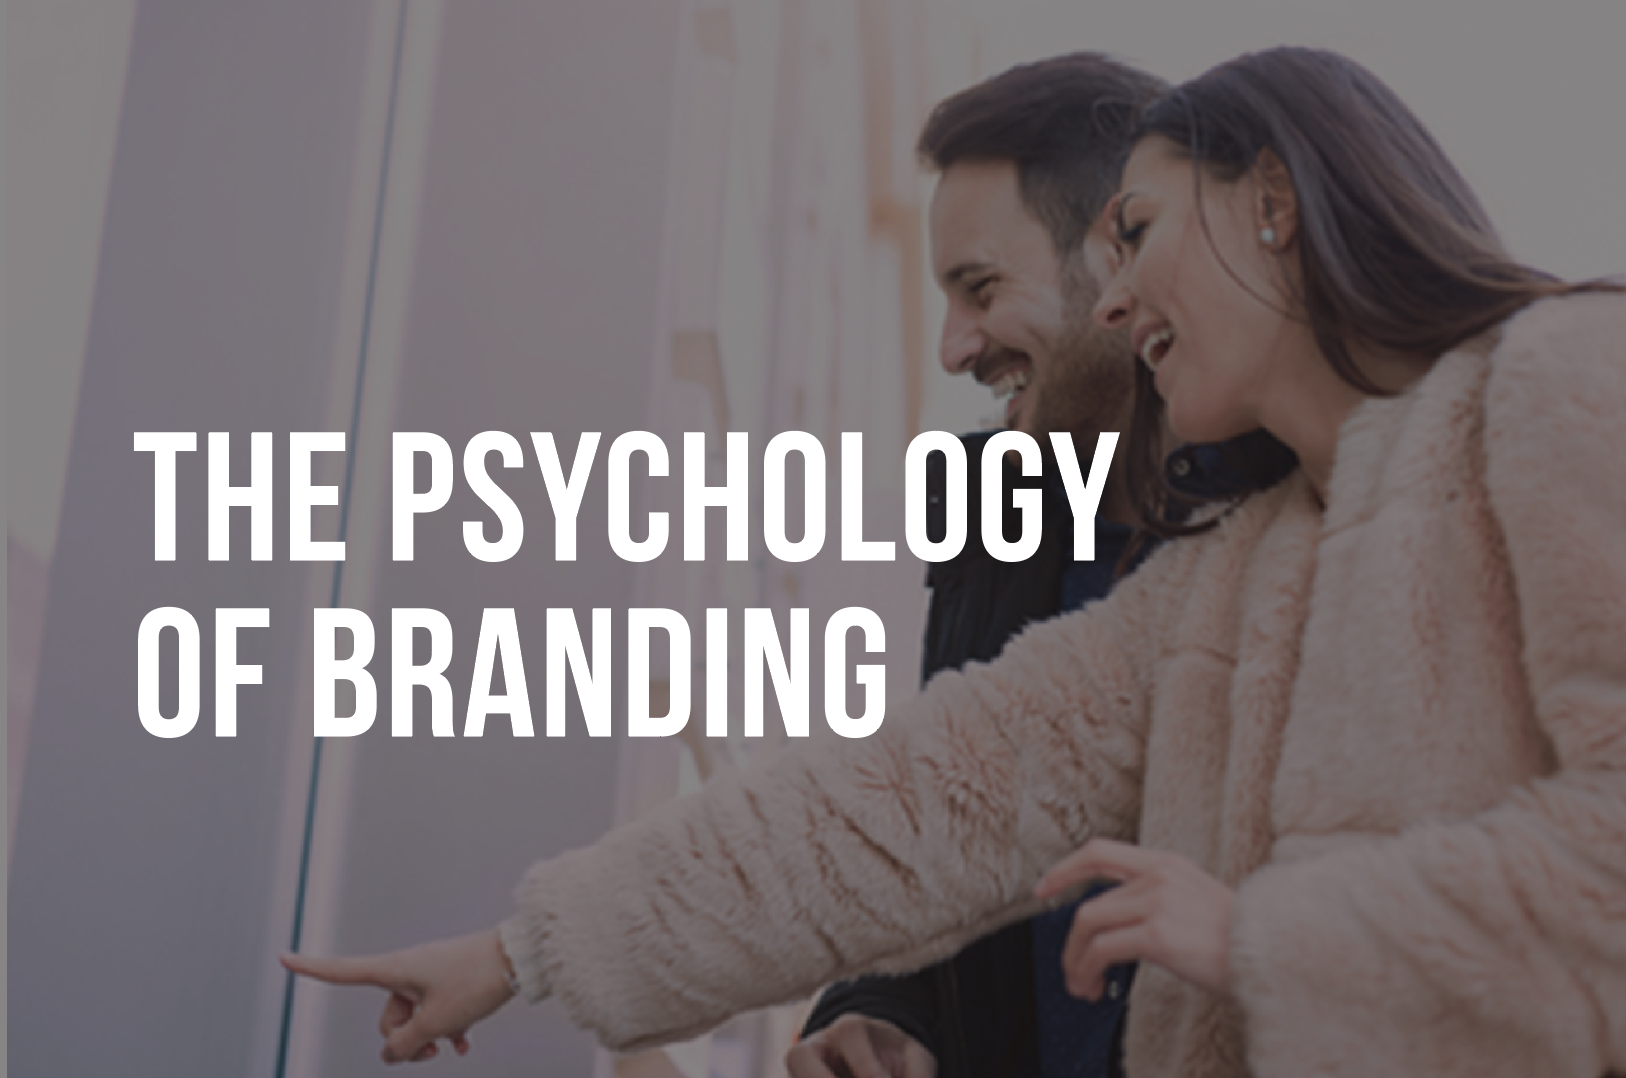 THE PSYCHOLOGY OF BRANDING AND WHAT IT MEANS TO YOUR BUSINESS